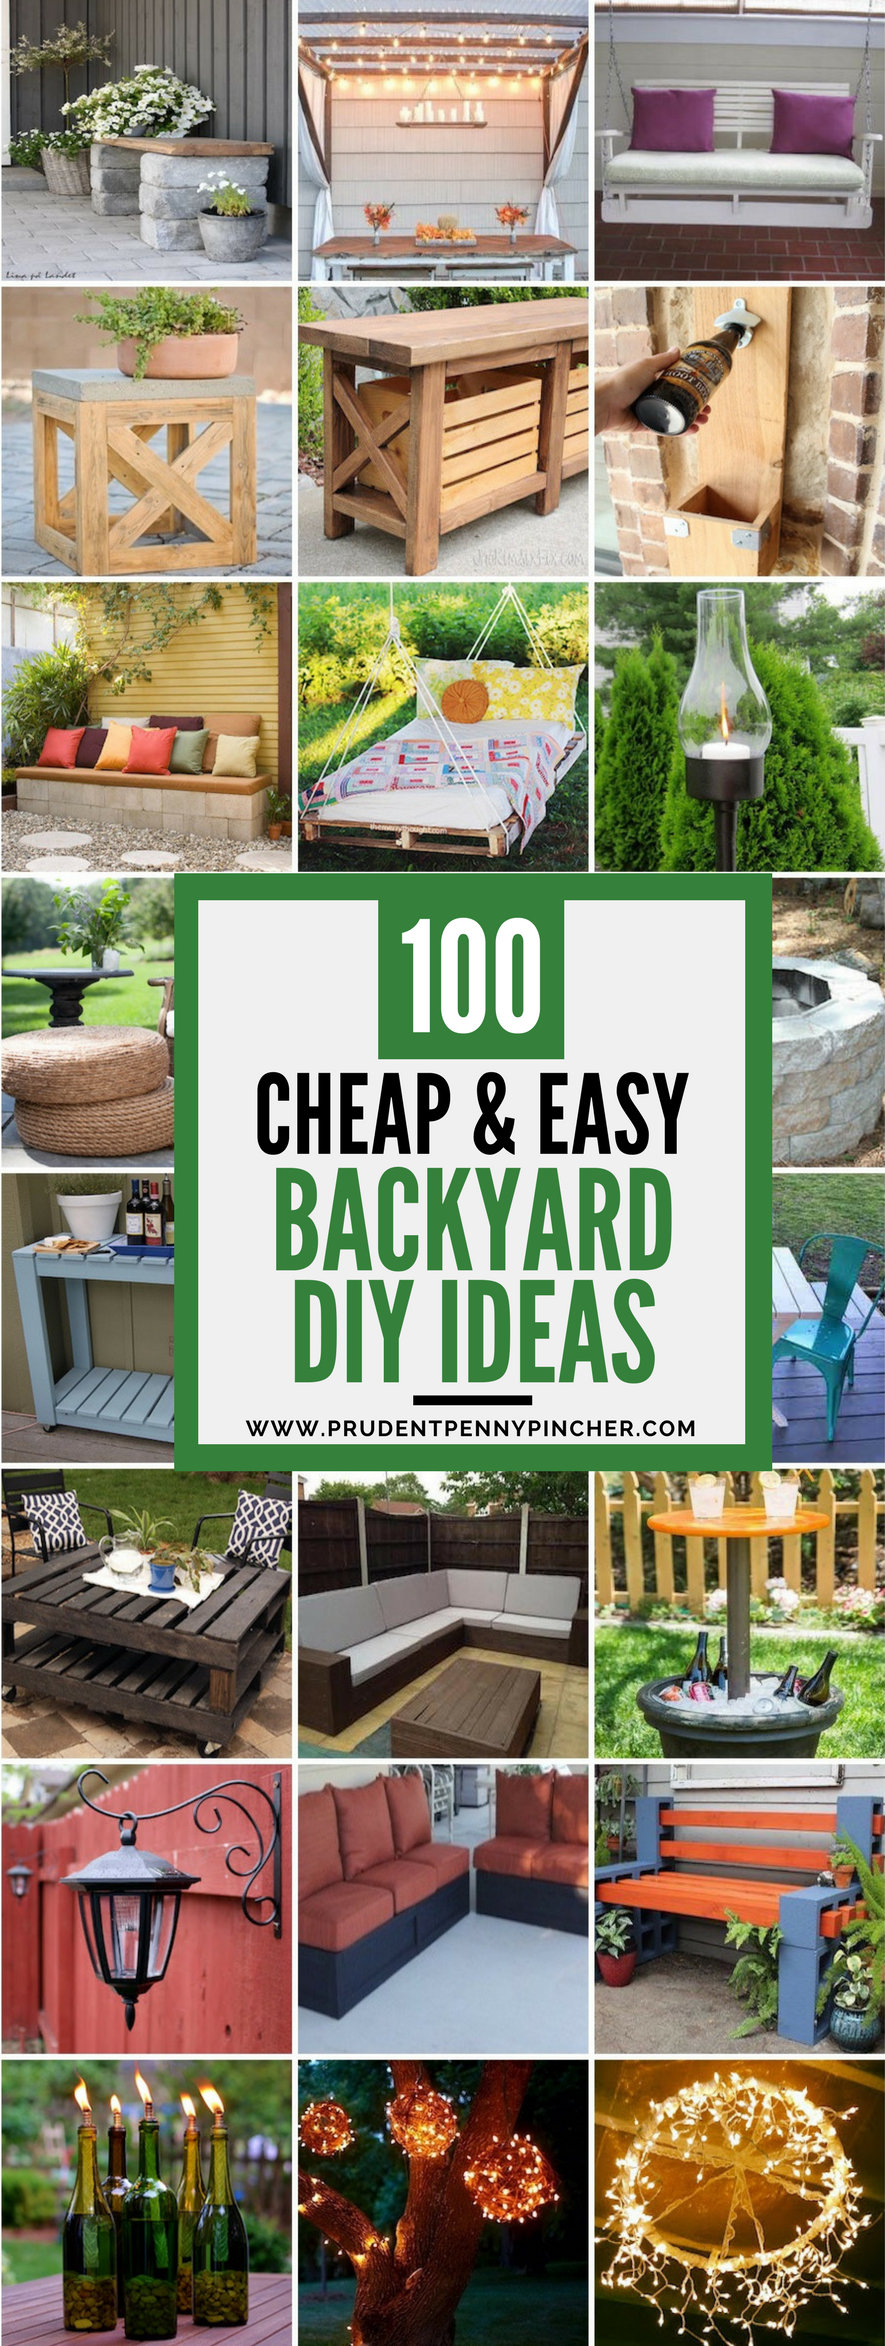 100 cheap and easy diy backyard ideas prudent penny pincher for Easy garden patio ideas